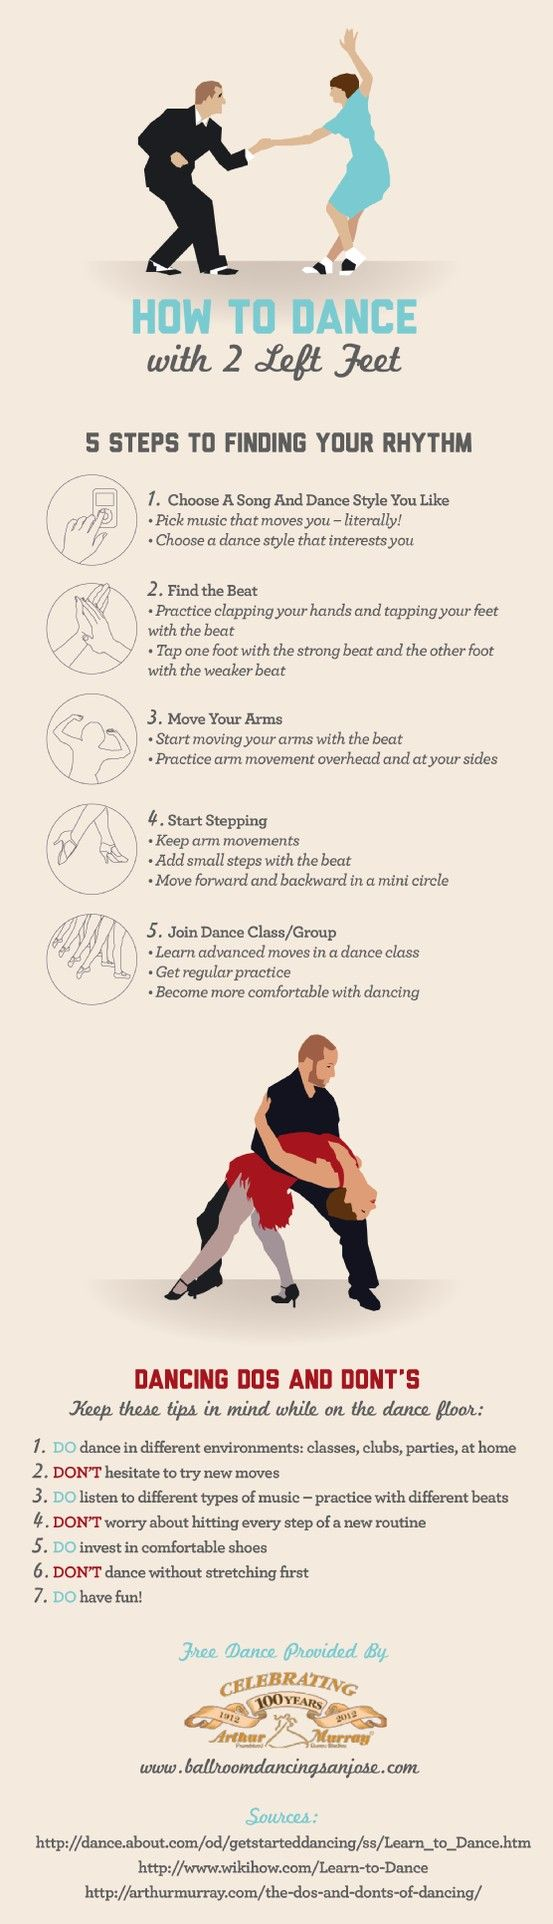 Salsa, tango, ballroom—all of these dances can be in your repertoire even if you are worried about your dance skills. Try a dance lesson in San Jose and look to this infographic for tips on how to find your inner rhythm. Source: http://www.ballroomdancingsanjose.com/676428/2013/04/05/how-to-dance-with-two-left-feet-infographic.html